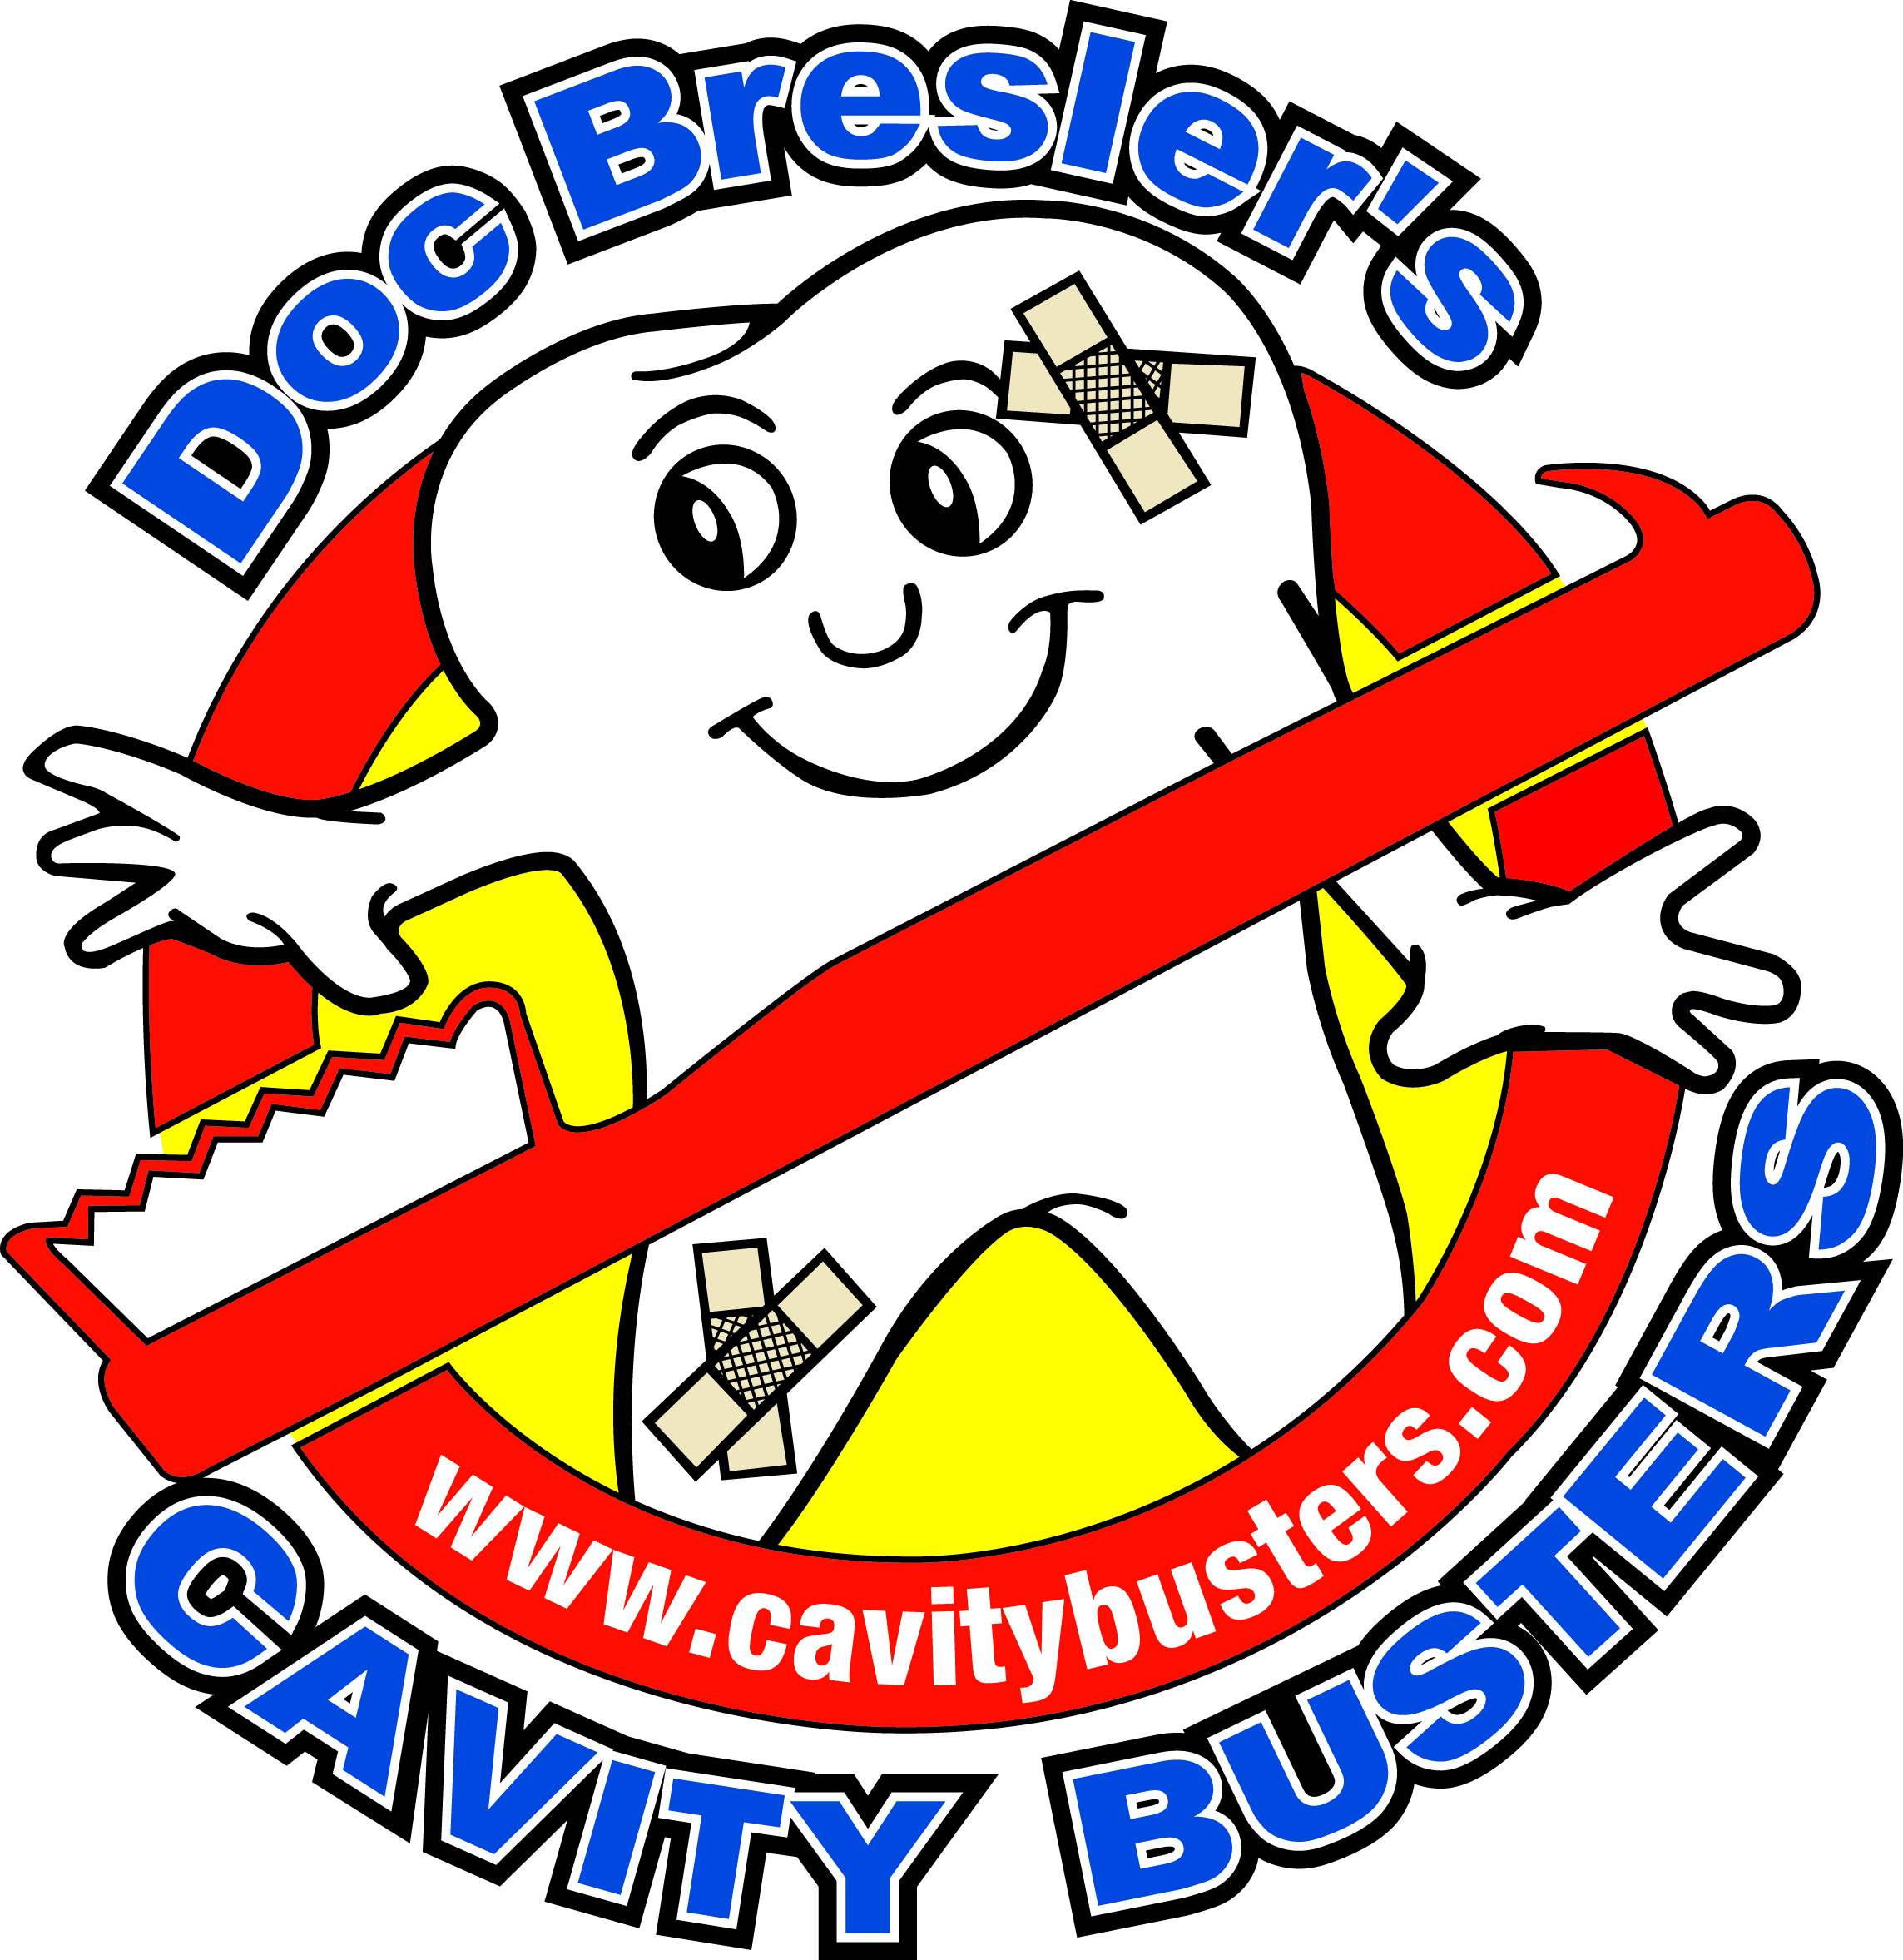 Doc Bresler's Cavity Busters